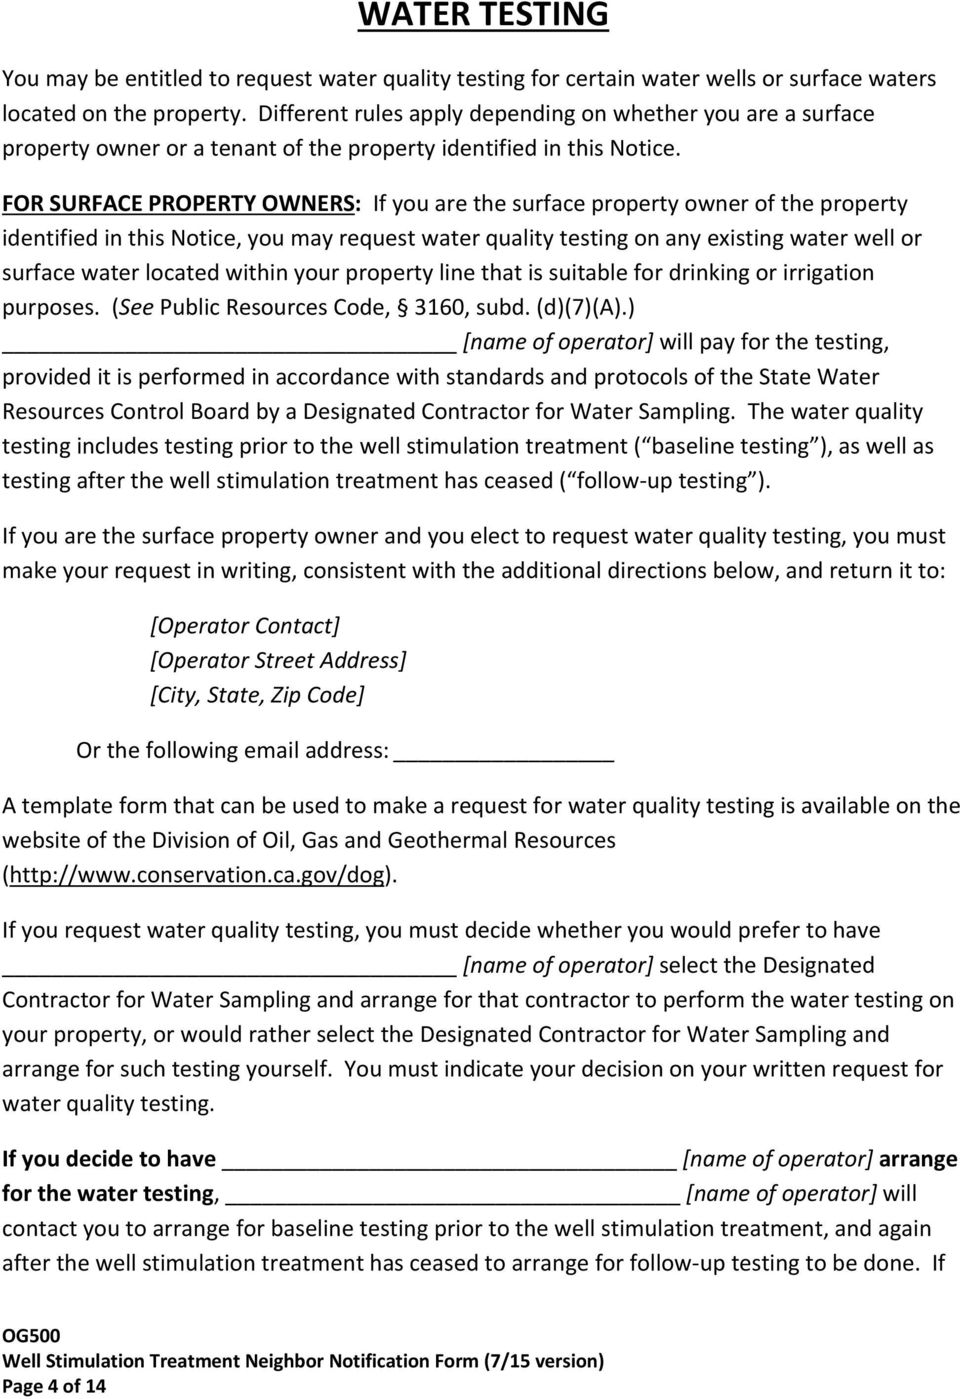 FOR SURFACE PROPERTY OWNERS: If you are the surface property owner of the property identified in this Notice, you may request water quality testing on any existing water well or surface water located